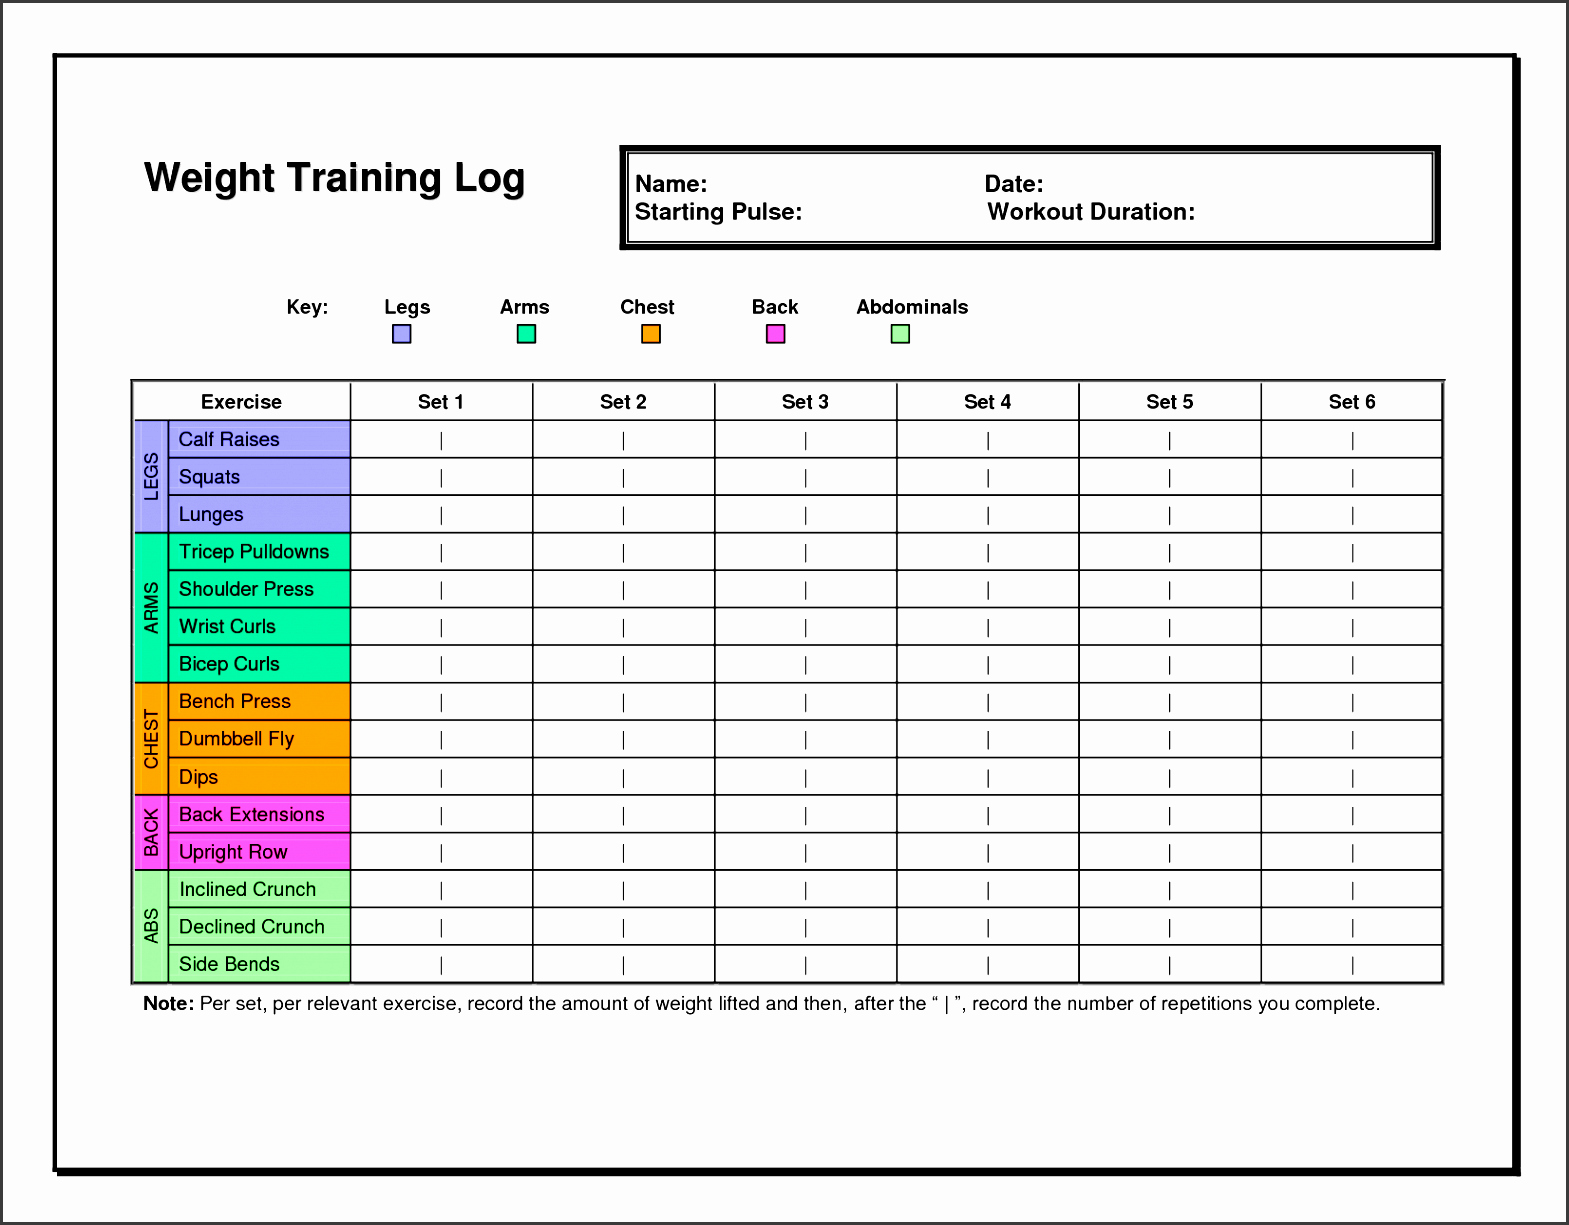 Training Schedule Template Excel Luxury 7 Exercise Planner Template In Excel Sampletemplatess